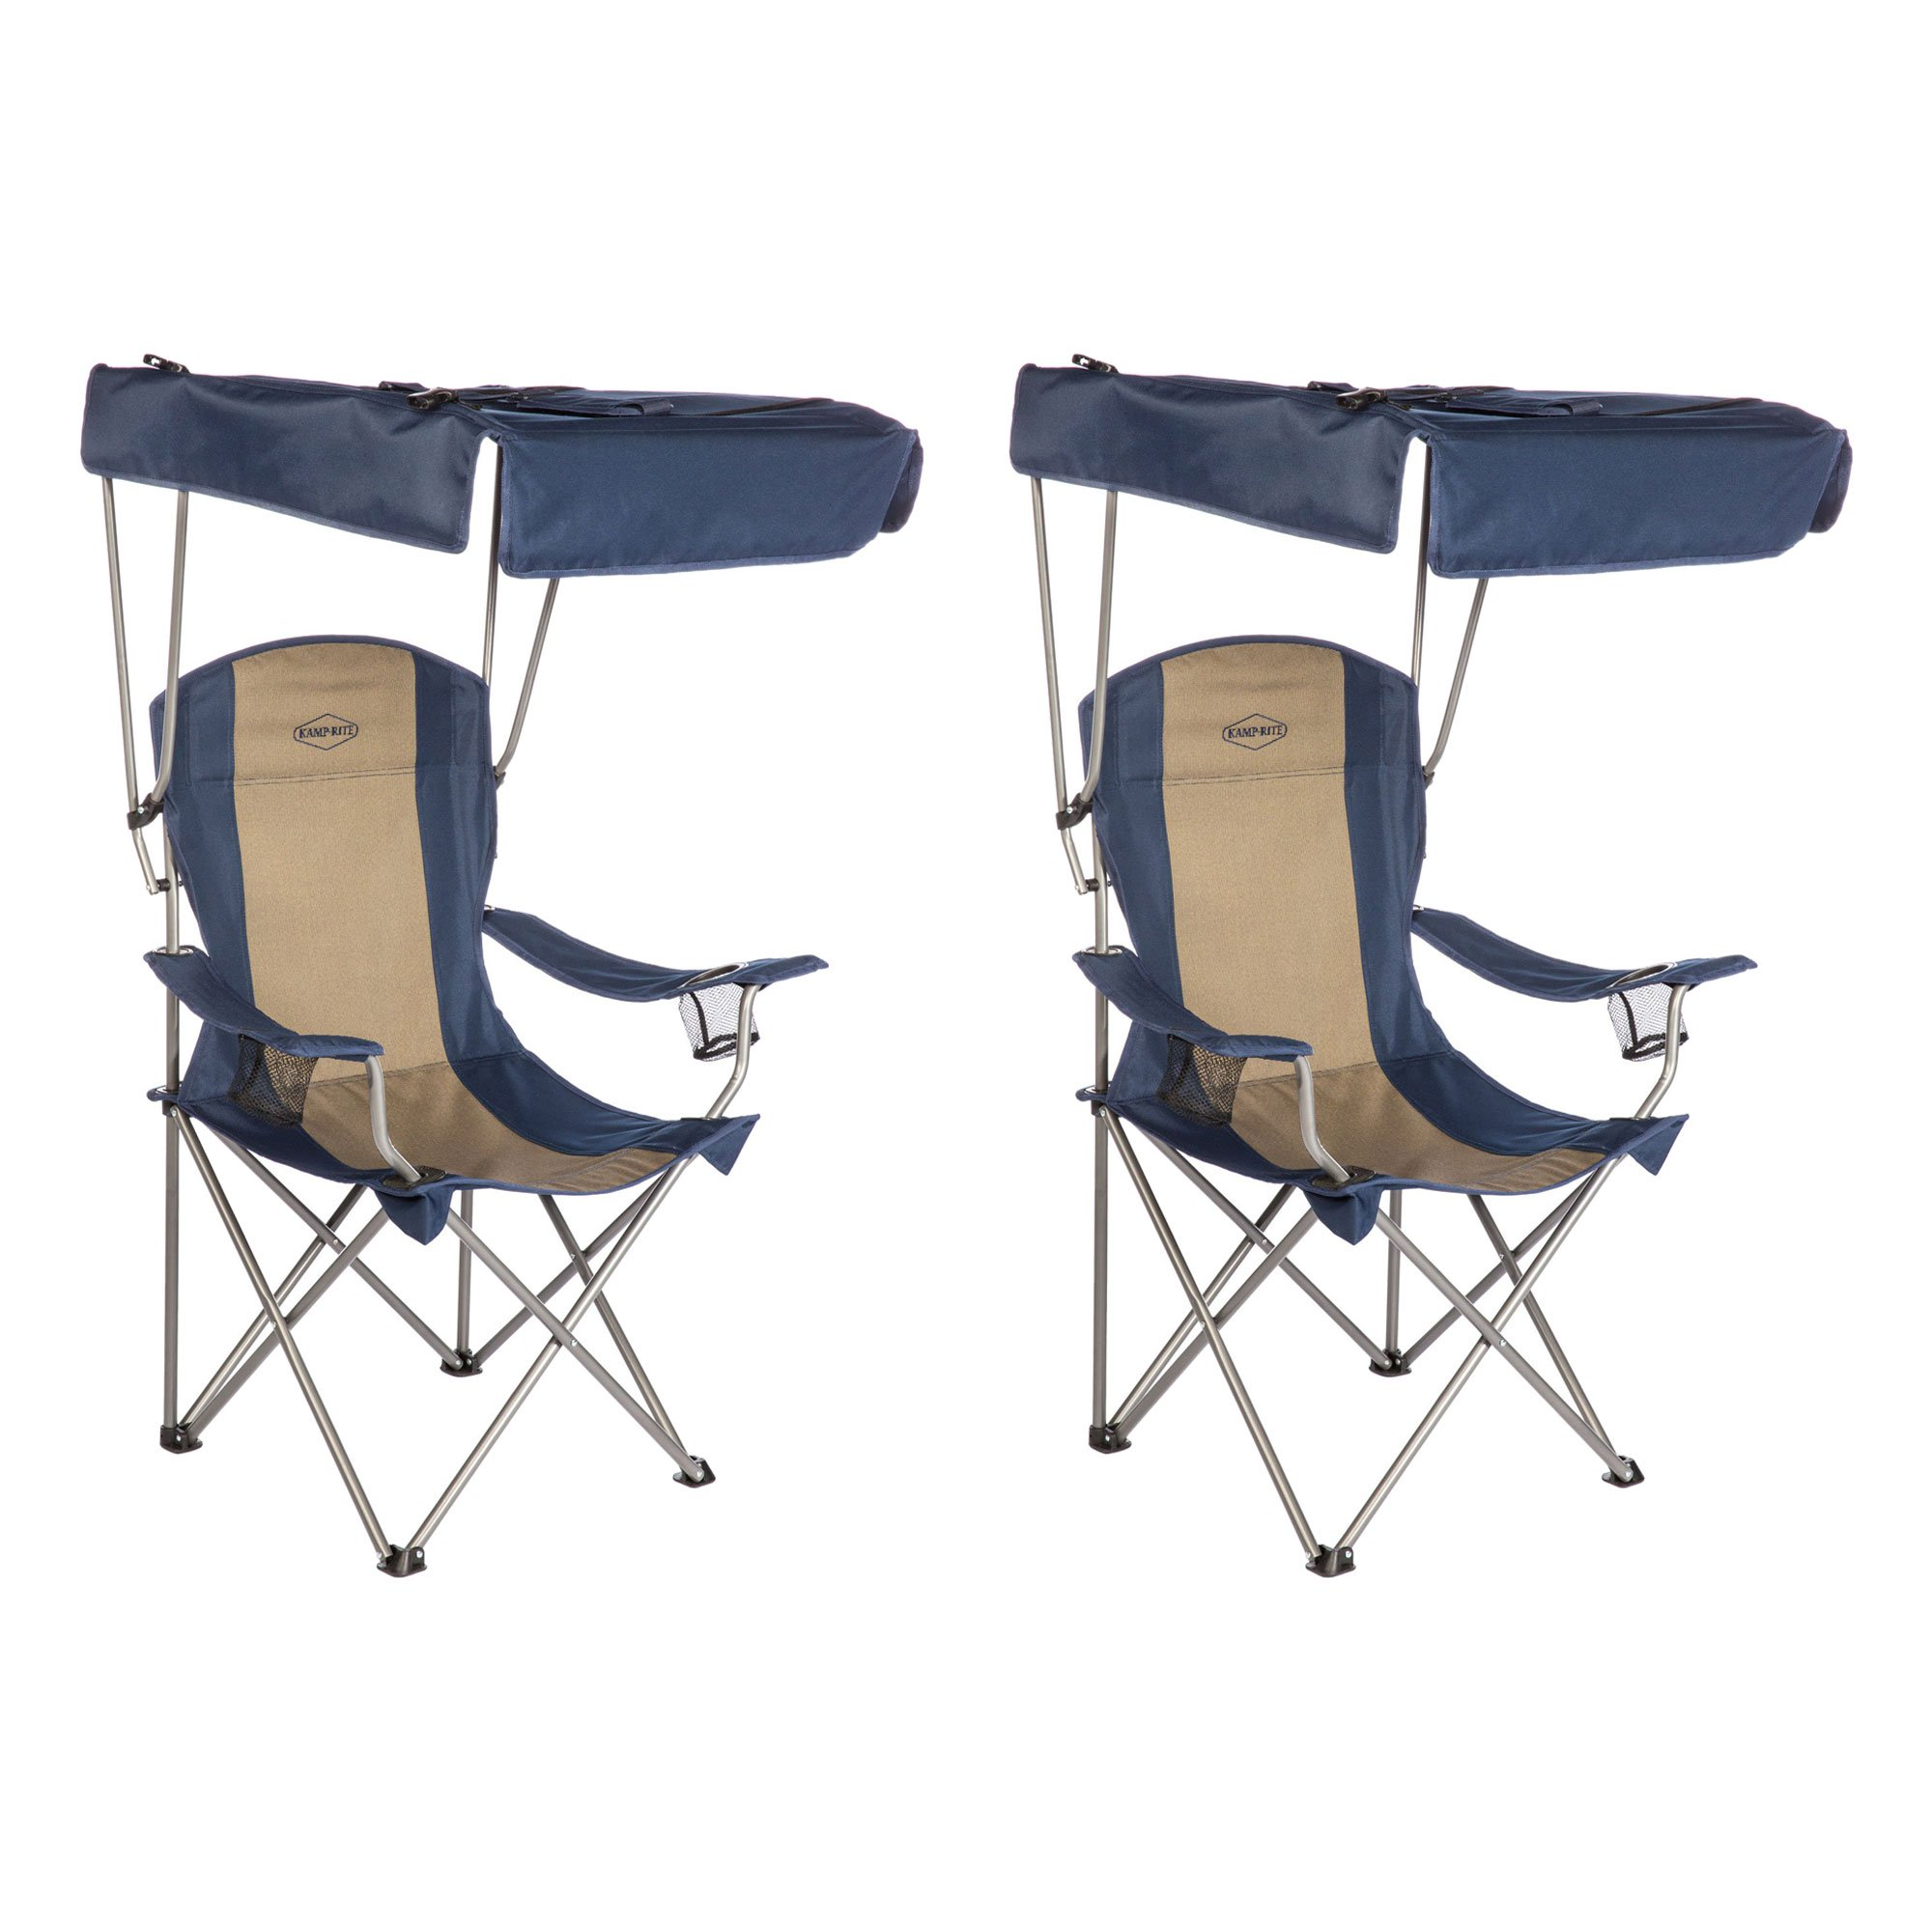 Kamp-Rite Outdoor Tailgating Camping Shade Canopy Folding Lawn Chair (2 Pack)